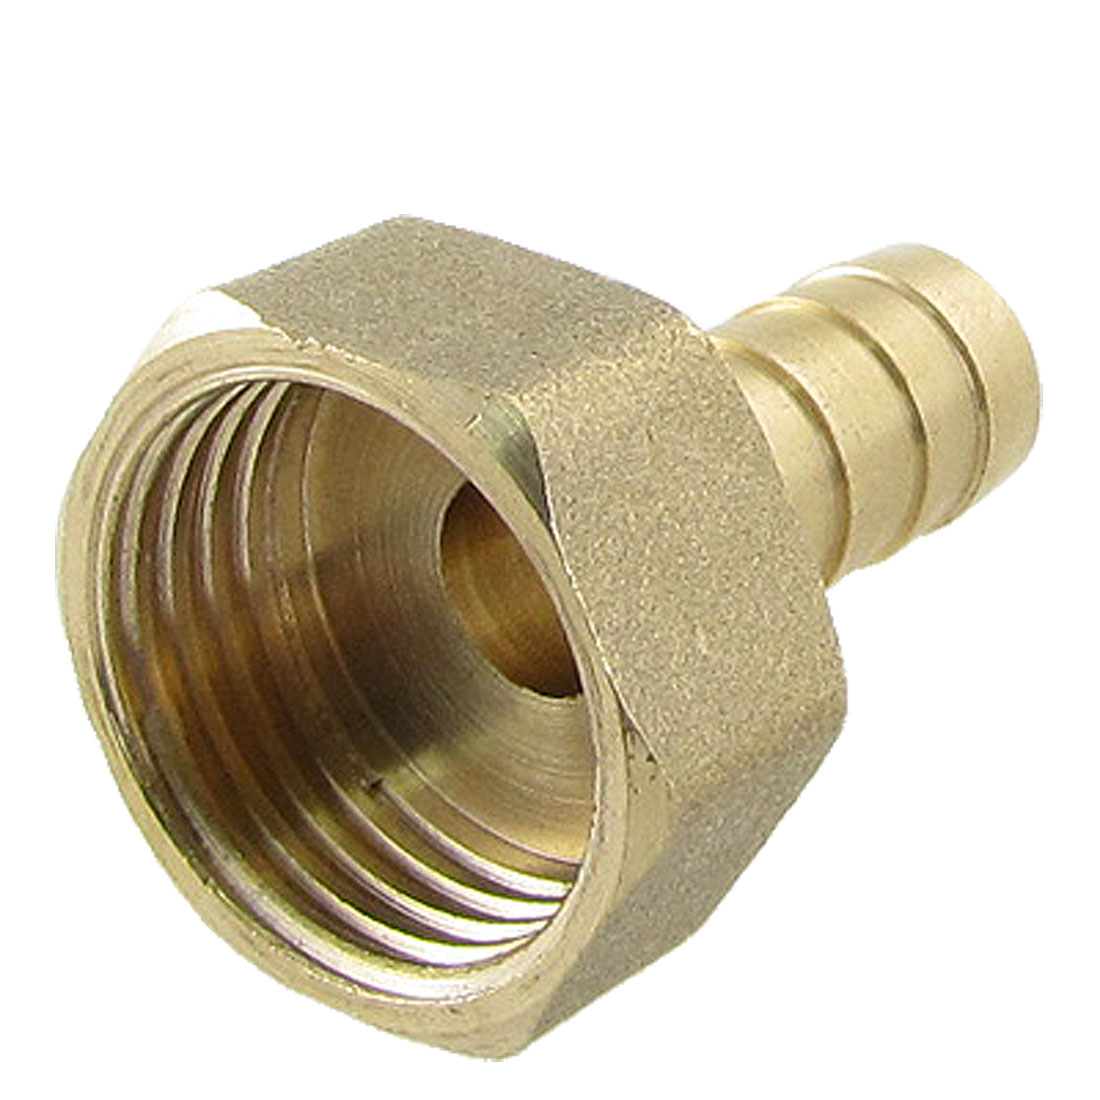 "Gold Tone Brass Fitting 10mm Hose Barb 1/2"" Female Thread Straight Connector"